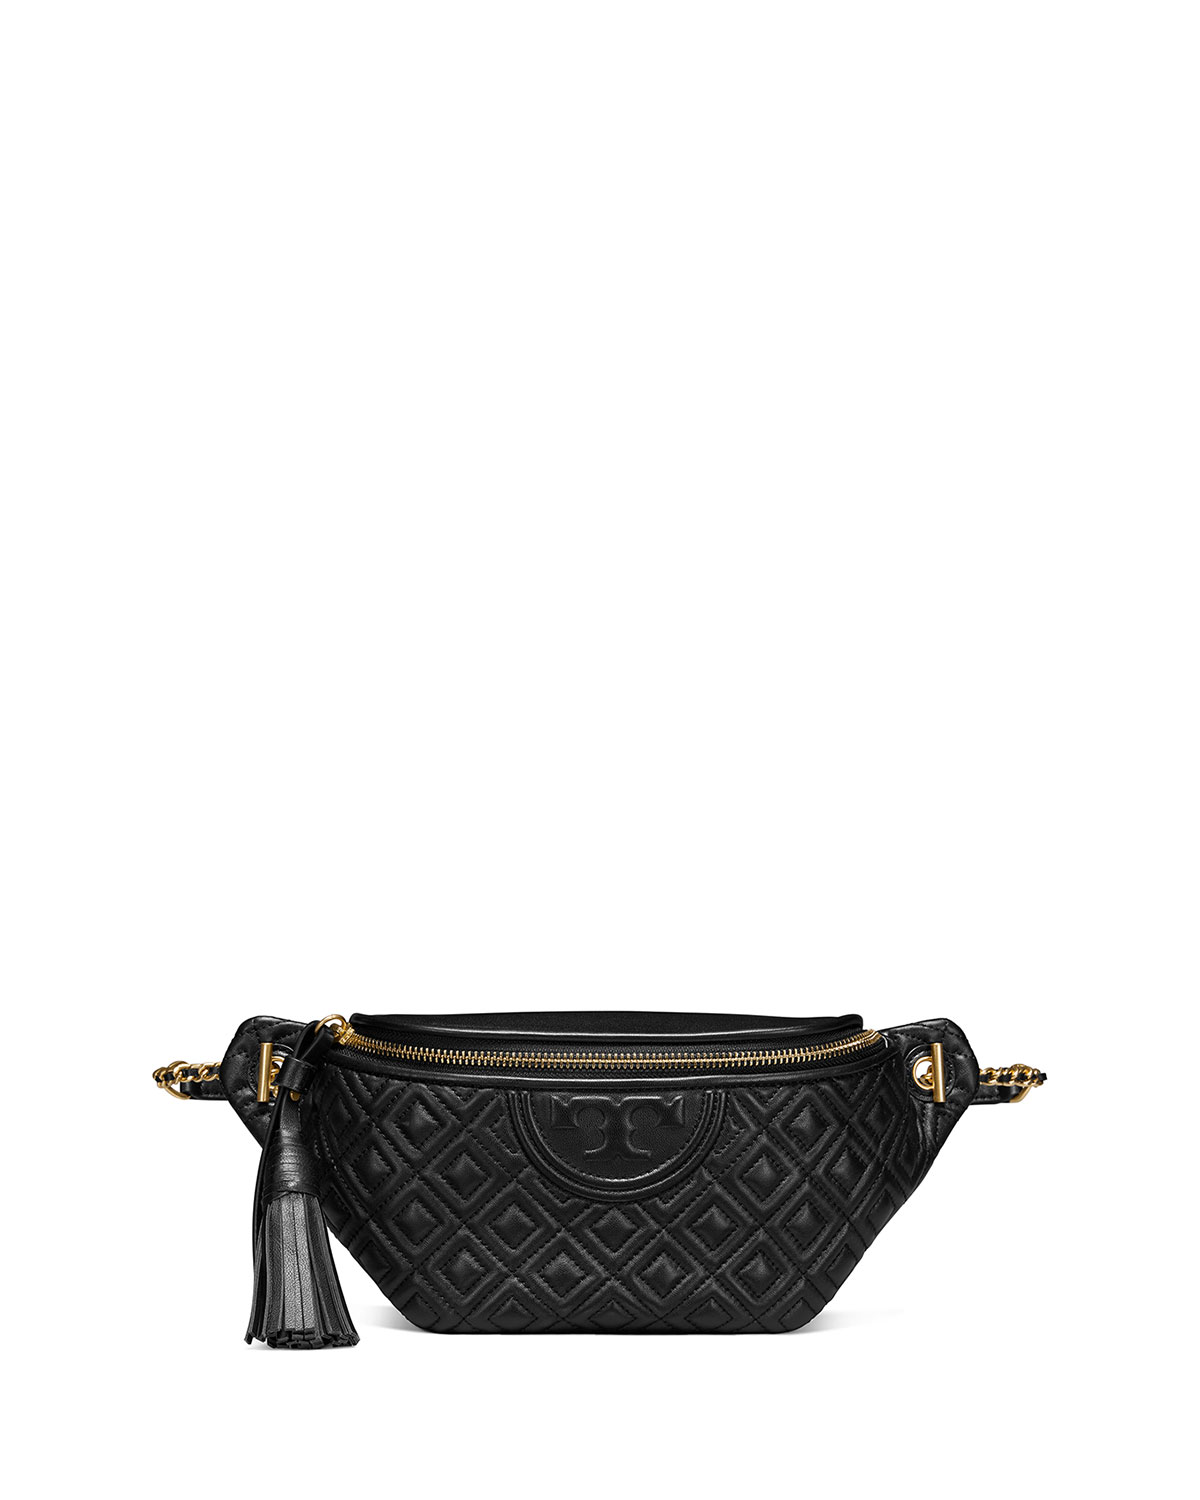 ab1fd1cfe404 Tory Burch Fleming Leather Fannypack Bag